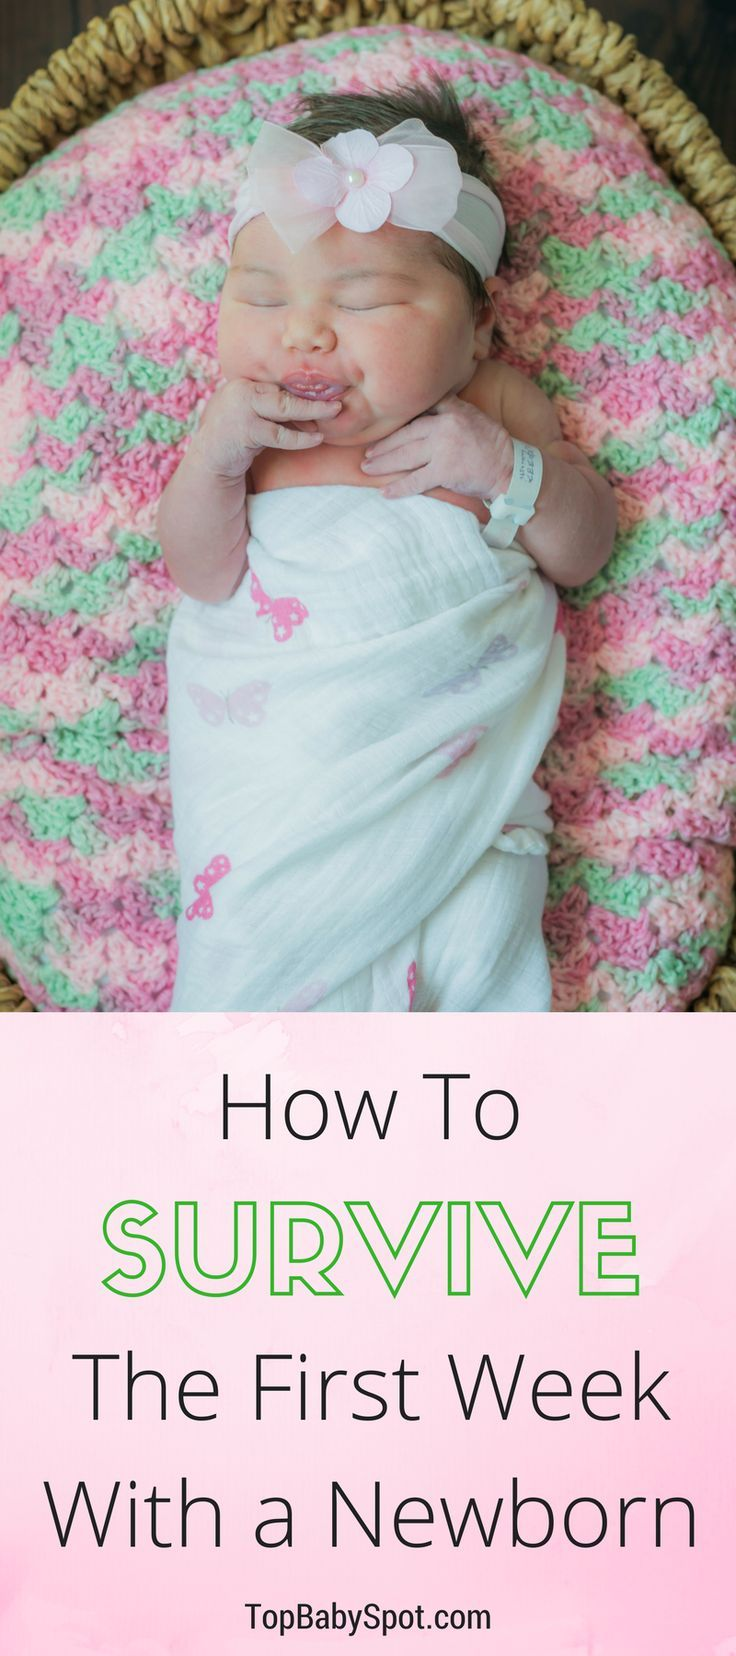 424 best baby u0027s first year images on pinterest baby tips baby